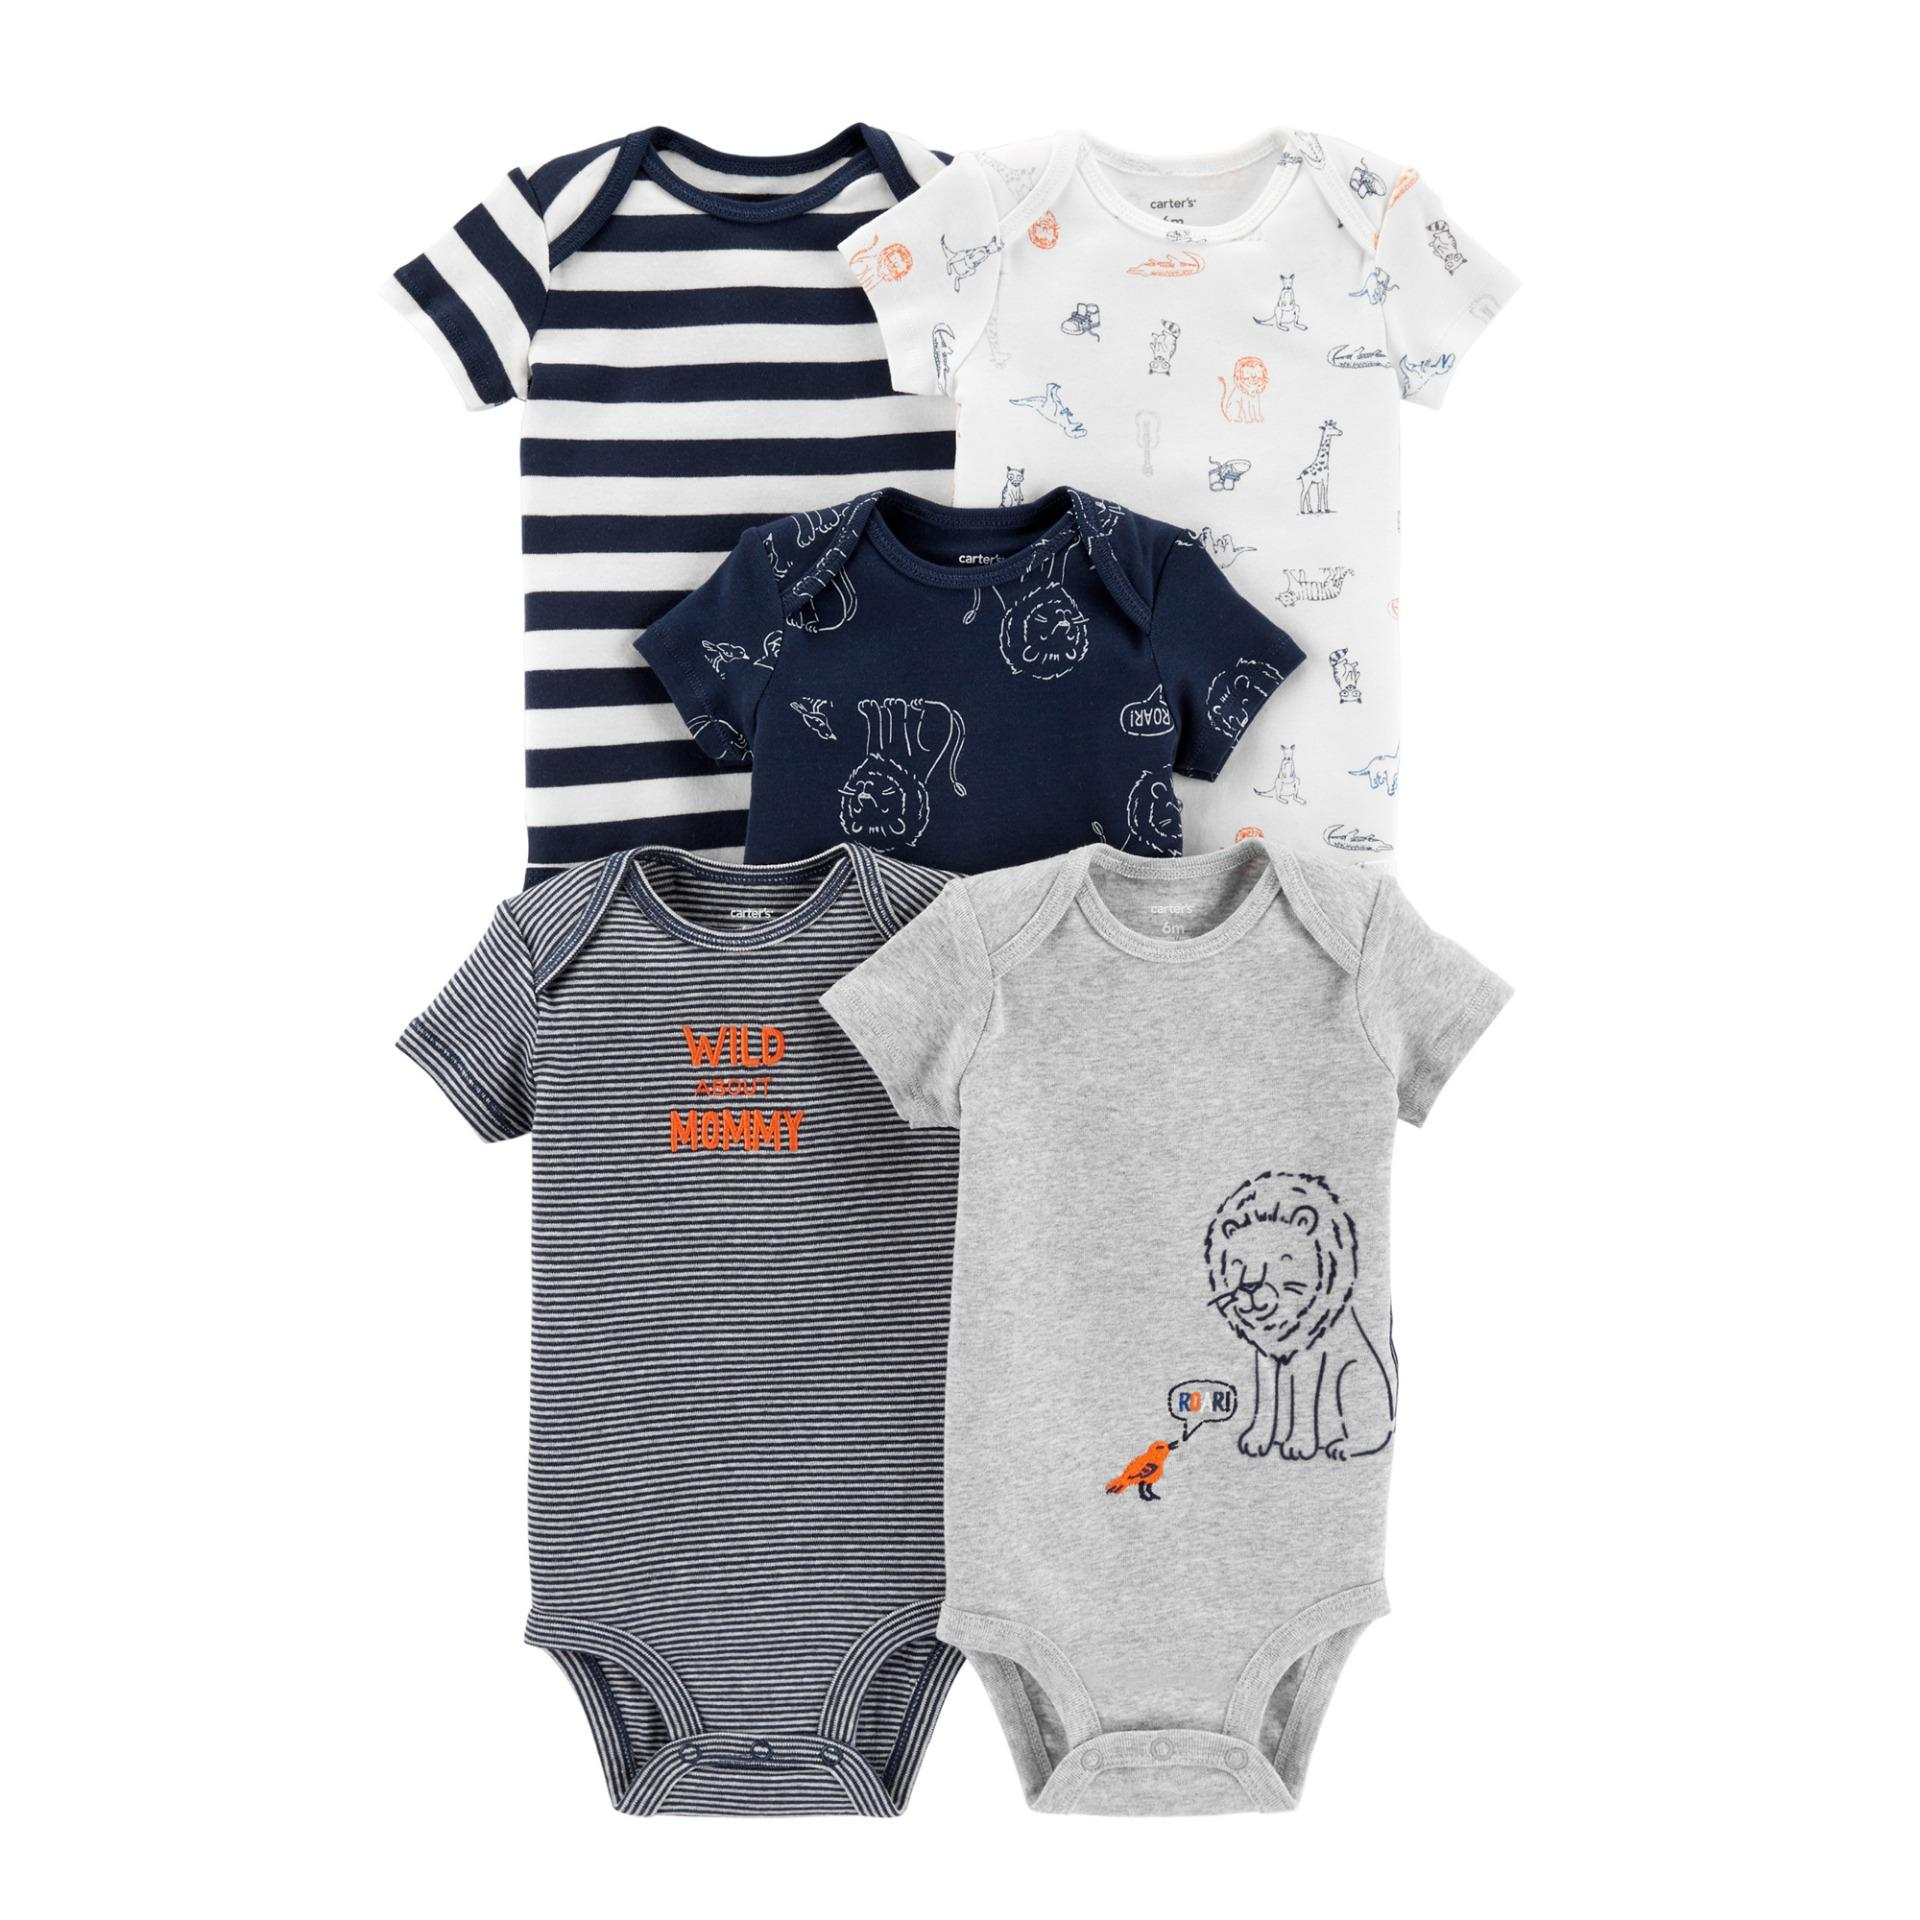 fedce1a38 Carter's Philippines - Carter's Body Suits for Boys for sale ...